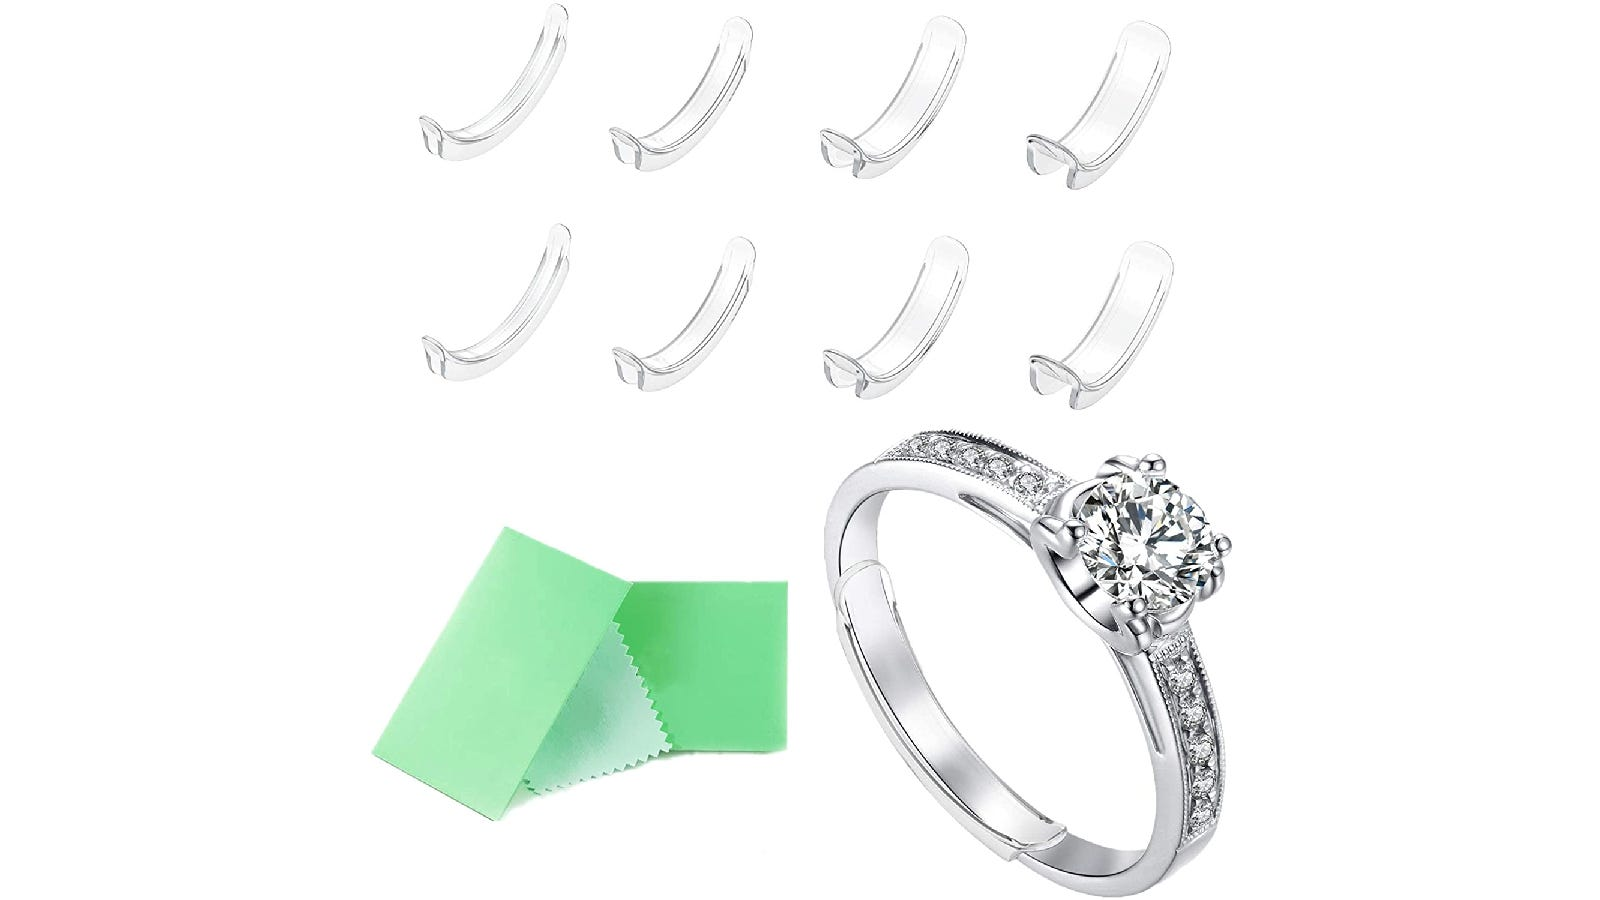 Eight clear ring adjusters above a silver diamond ring with a green cleaning cloth.